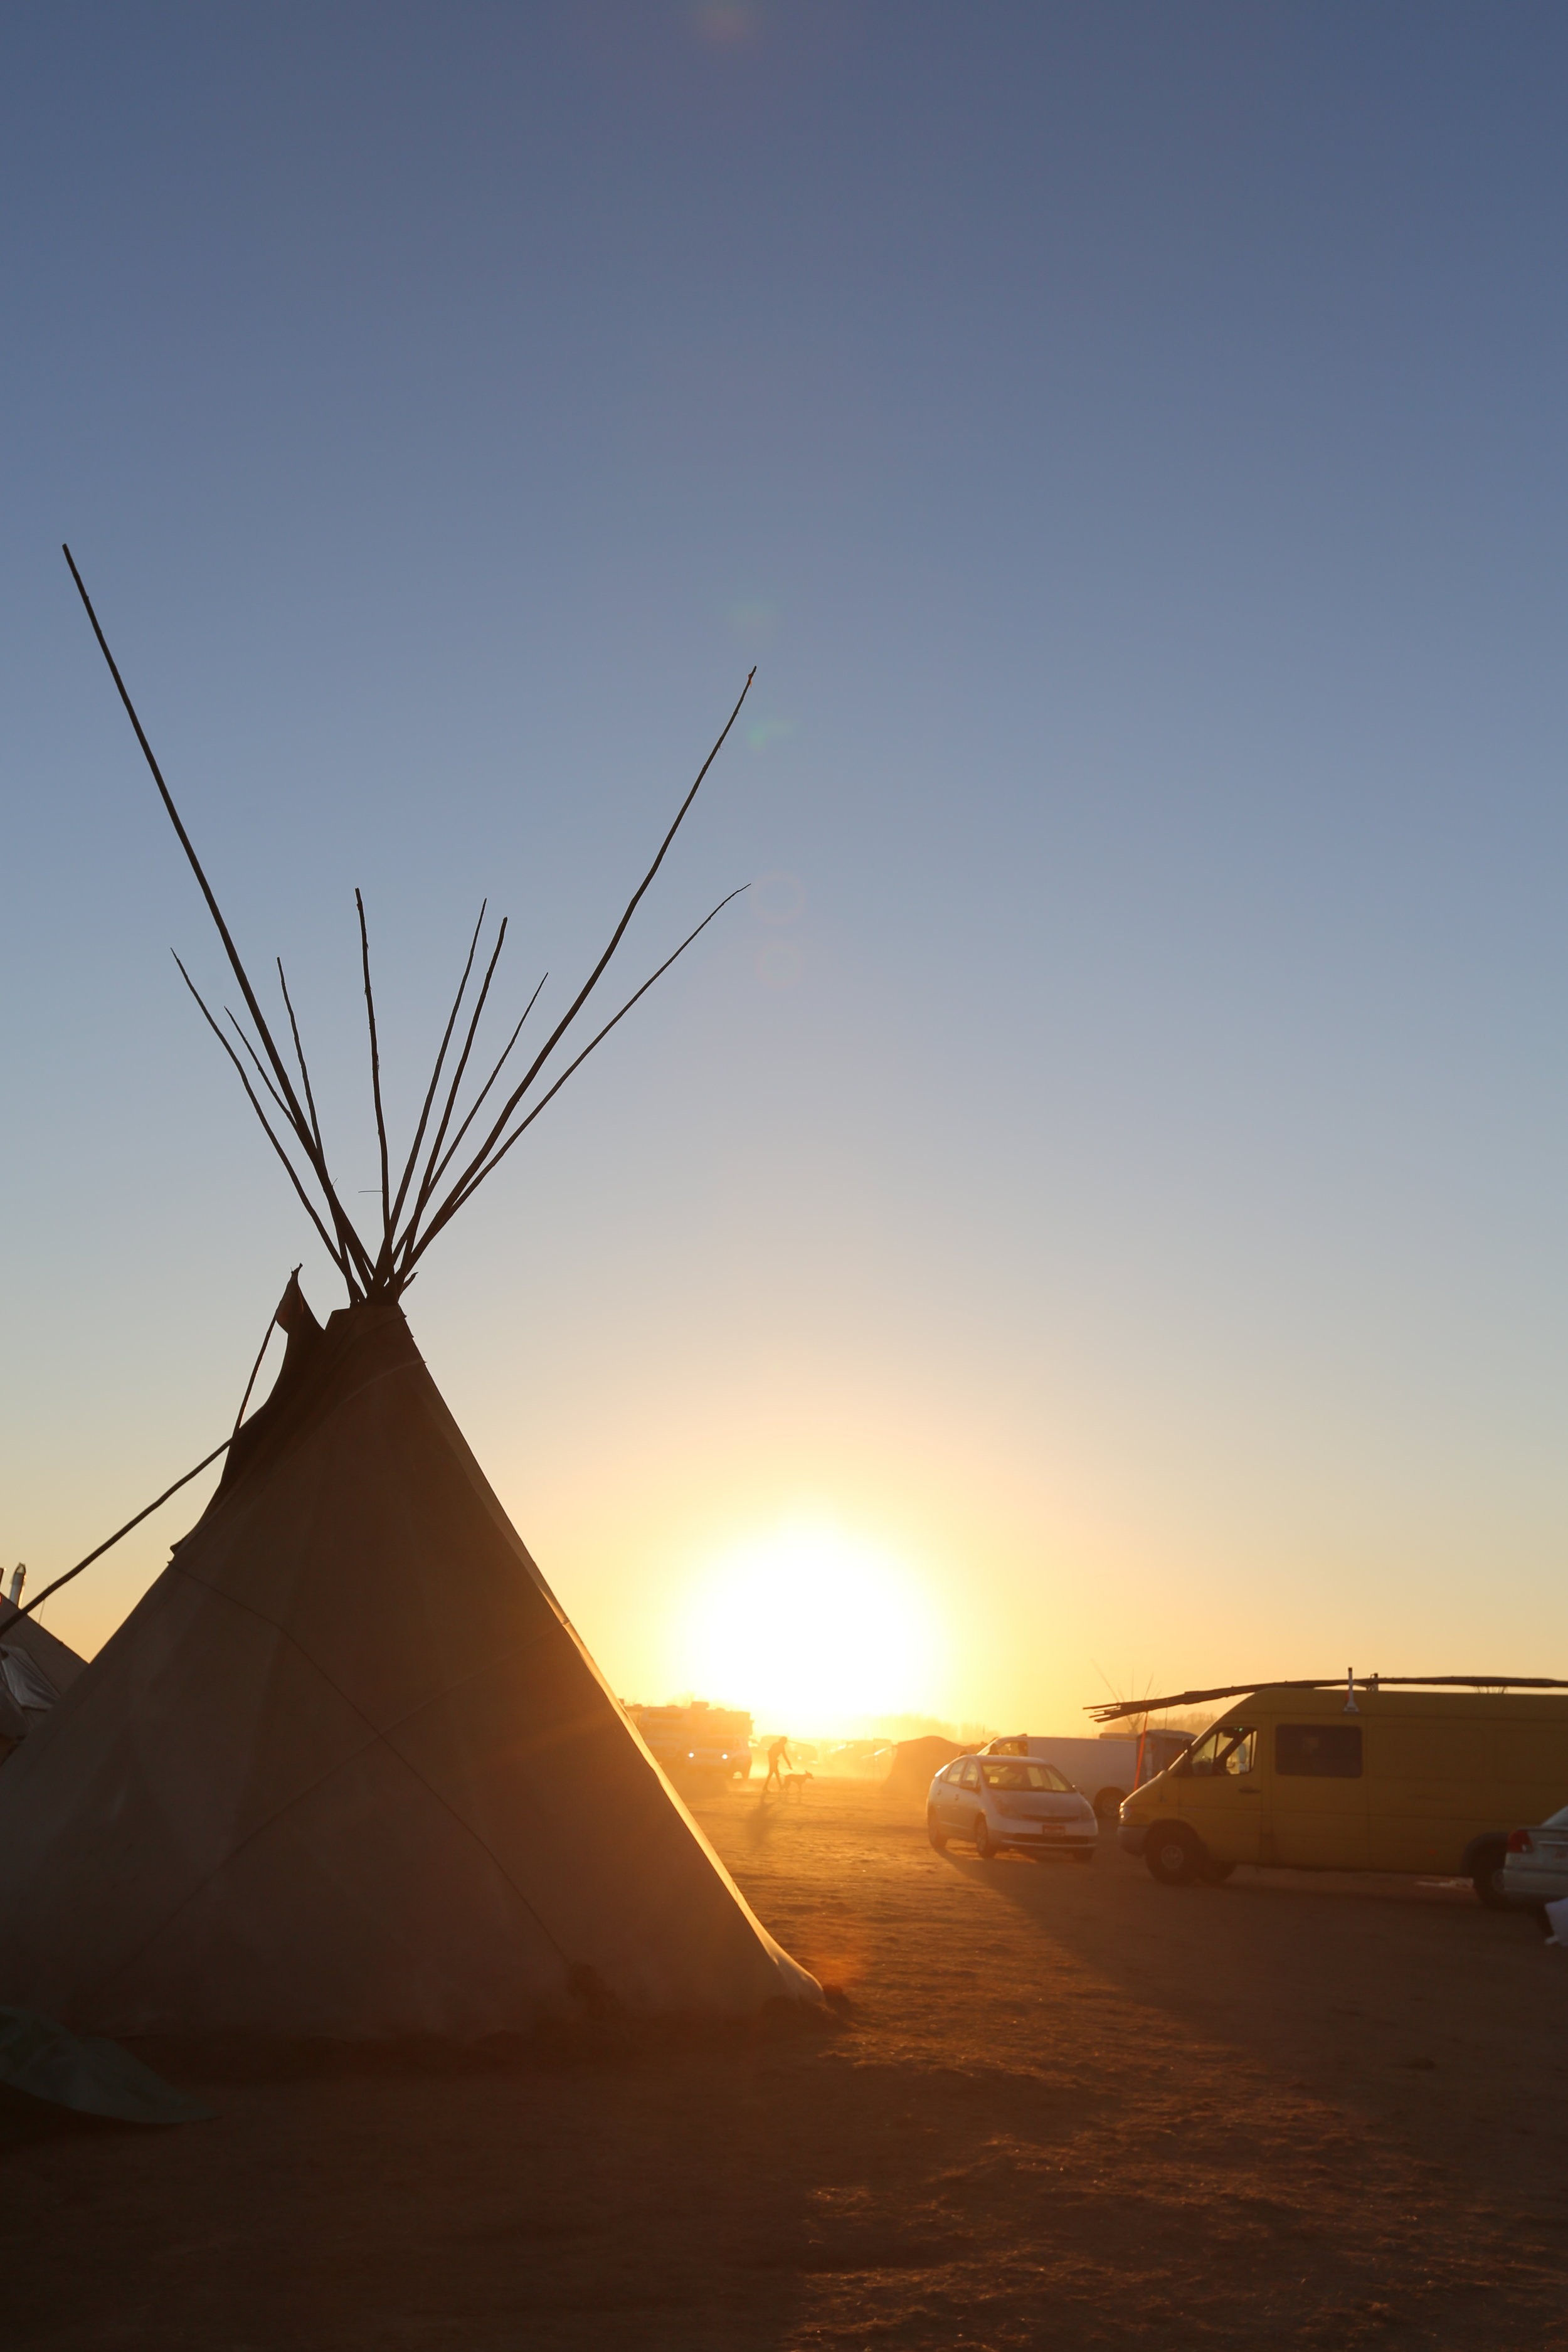 Sunset at Oceti Sakowin Camp. Photo by Heather Wilson